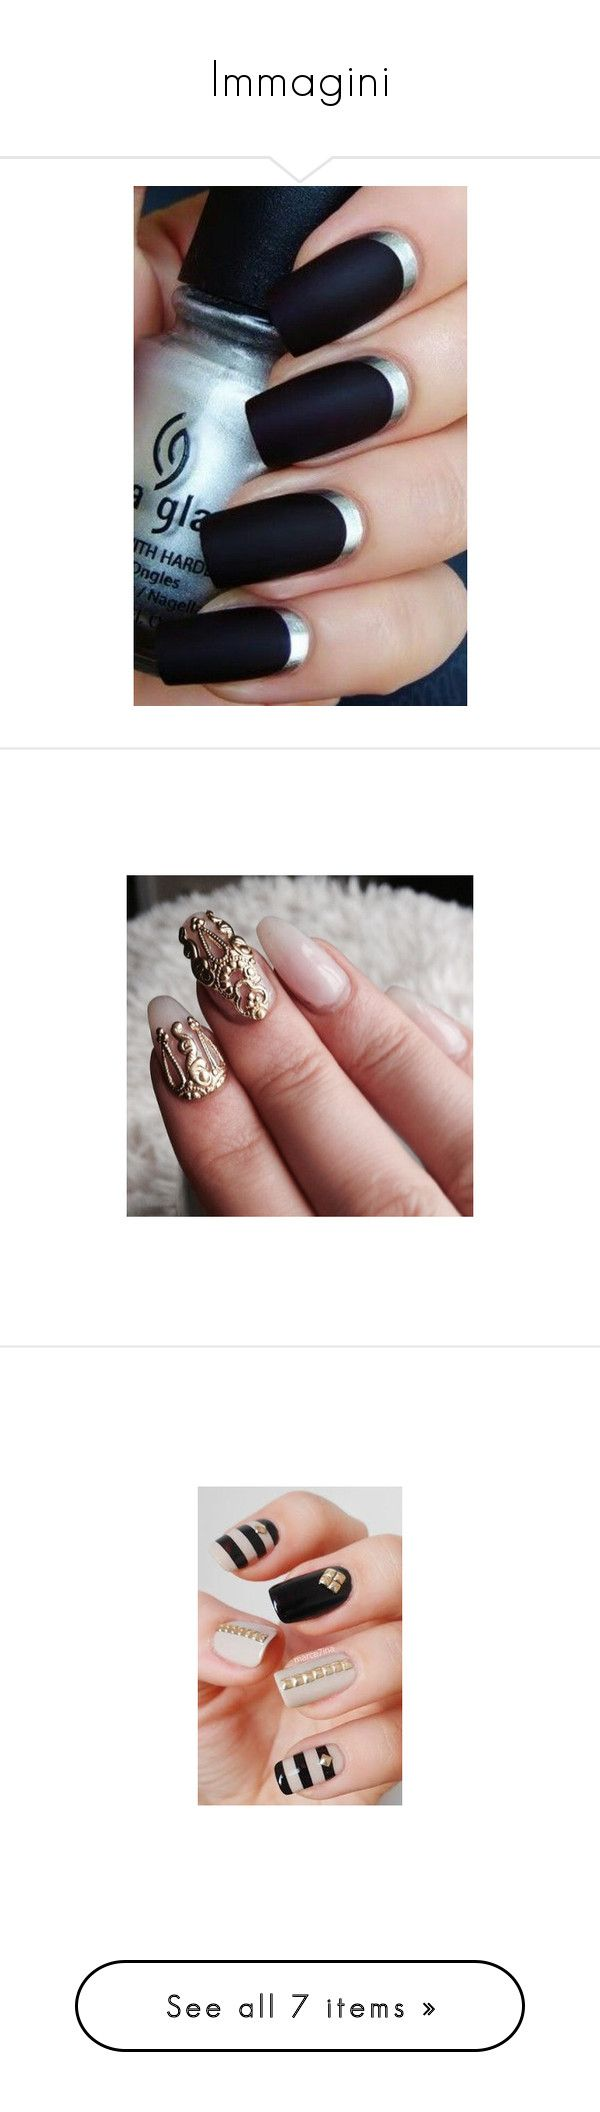 """""""Immagini"""" by fragolissima ❤ liked on Polyvore featuring beauty products, nail care, nail polish, nails, makeup, nail treatments, beauty, unhas, scented nail polish and accessories"""